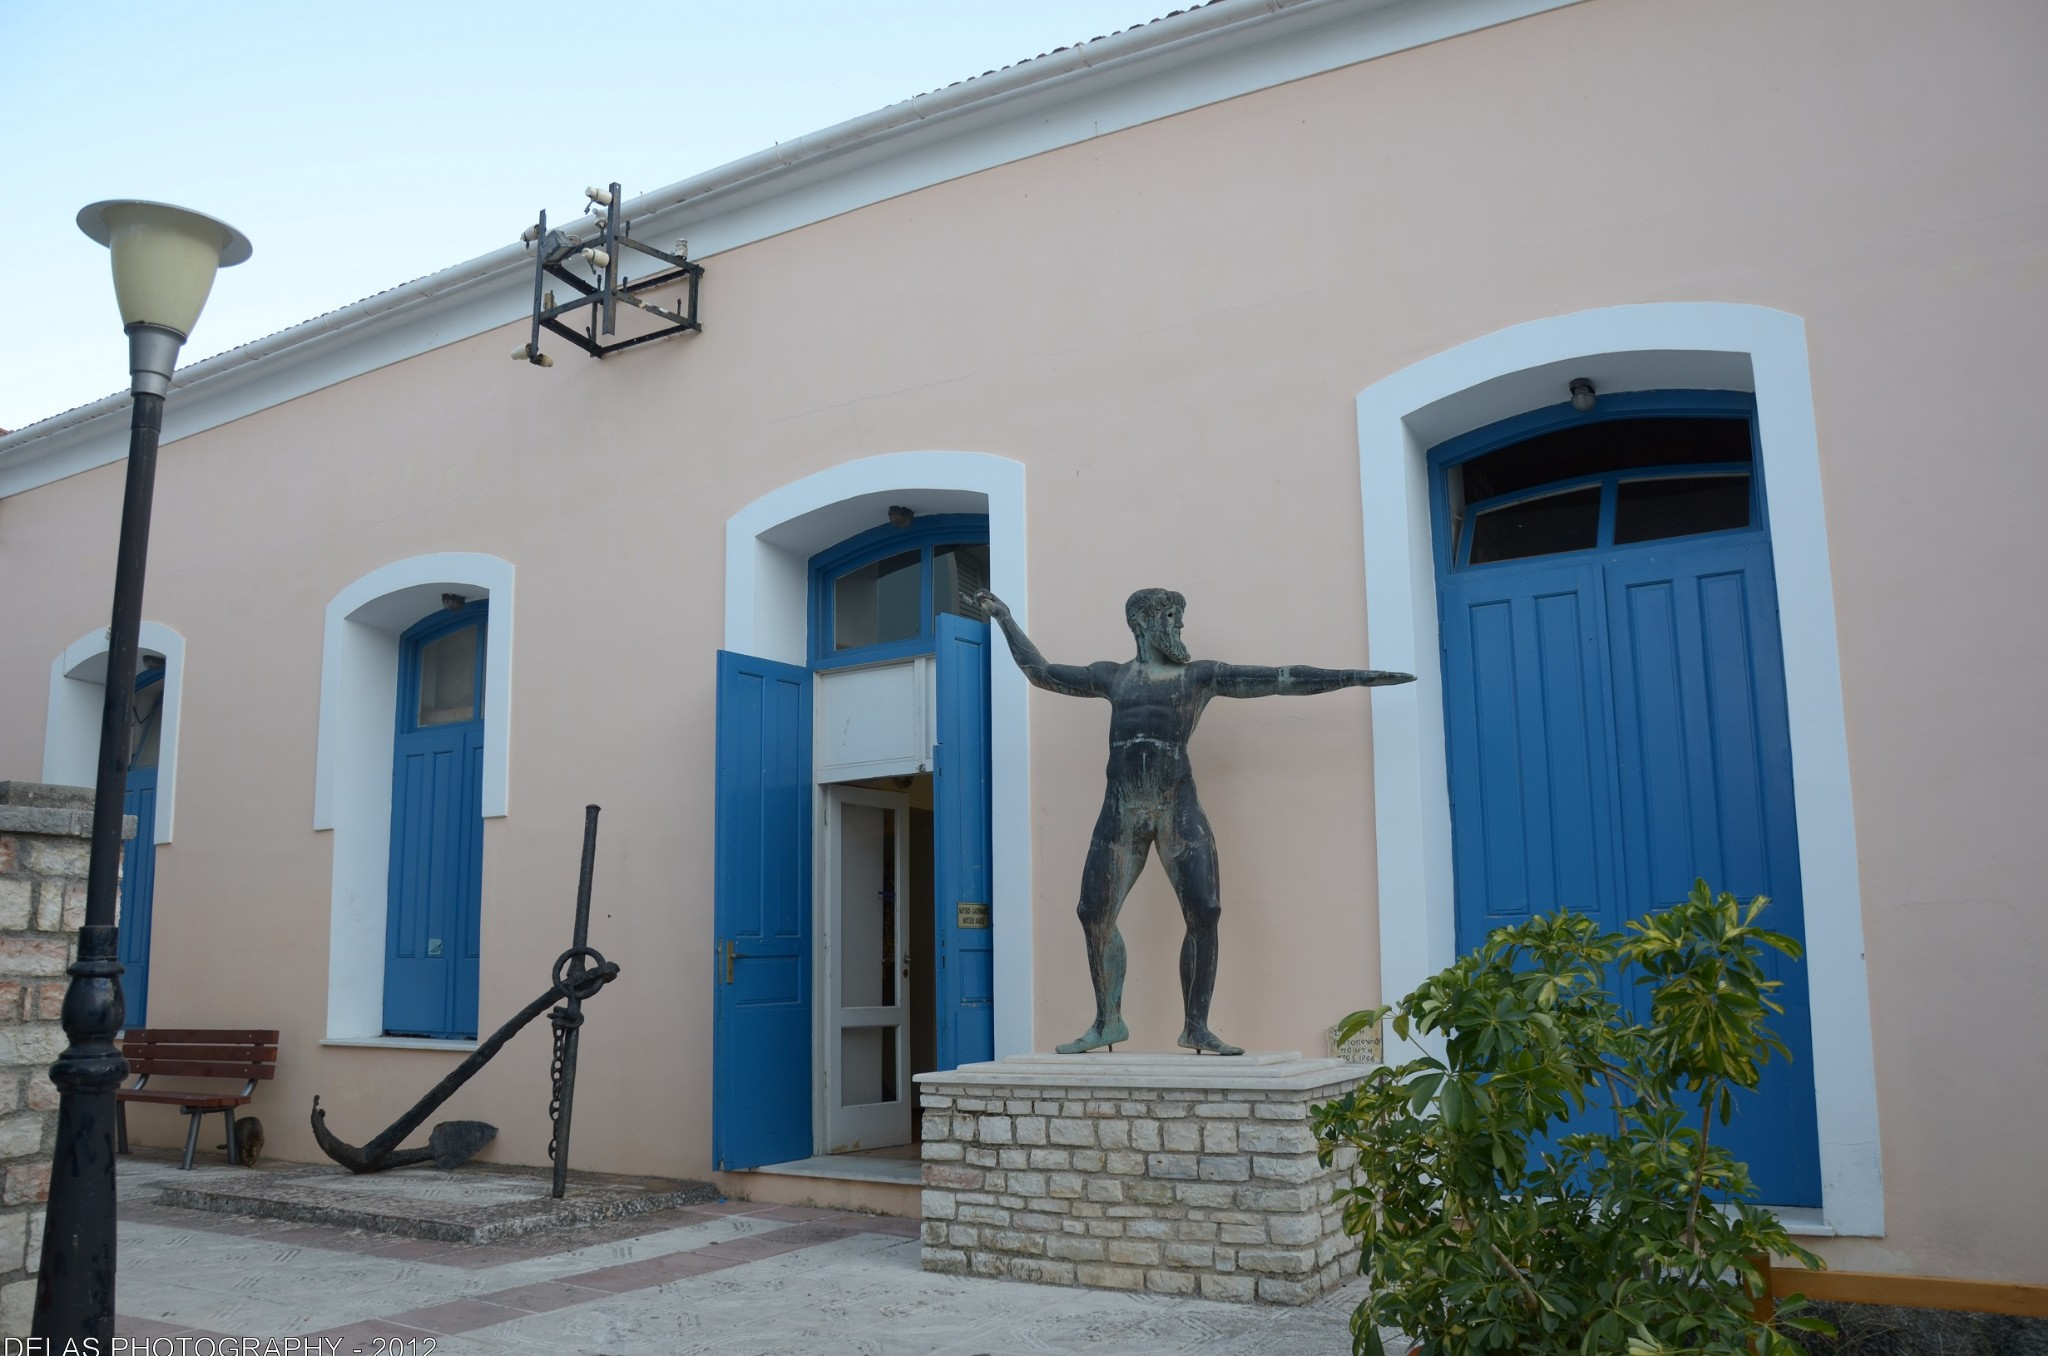 The Folklore and Nautical Museum of Ithaca